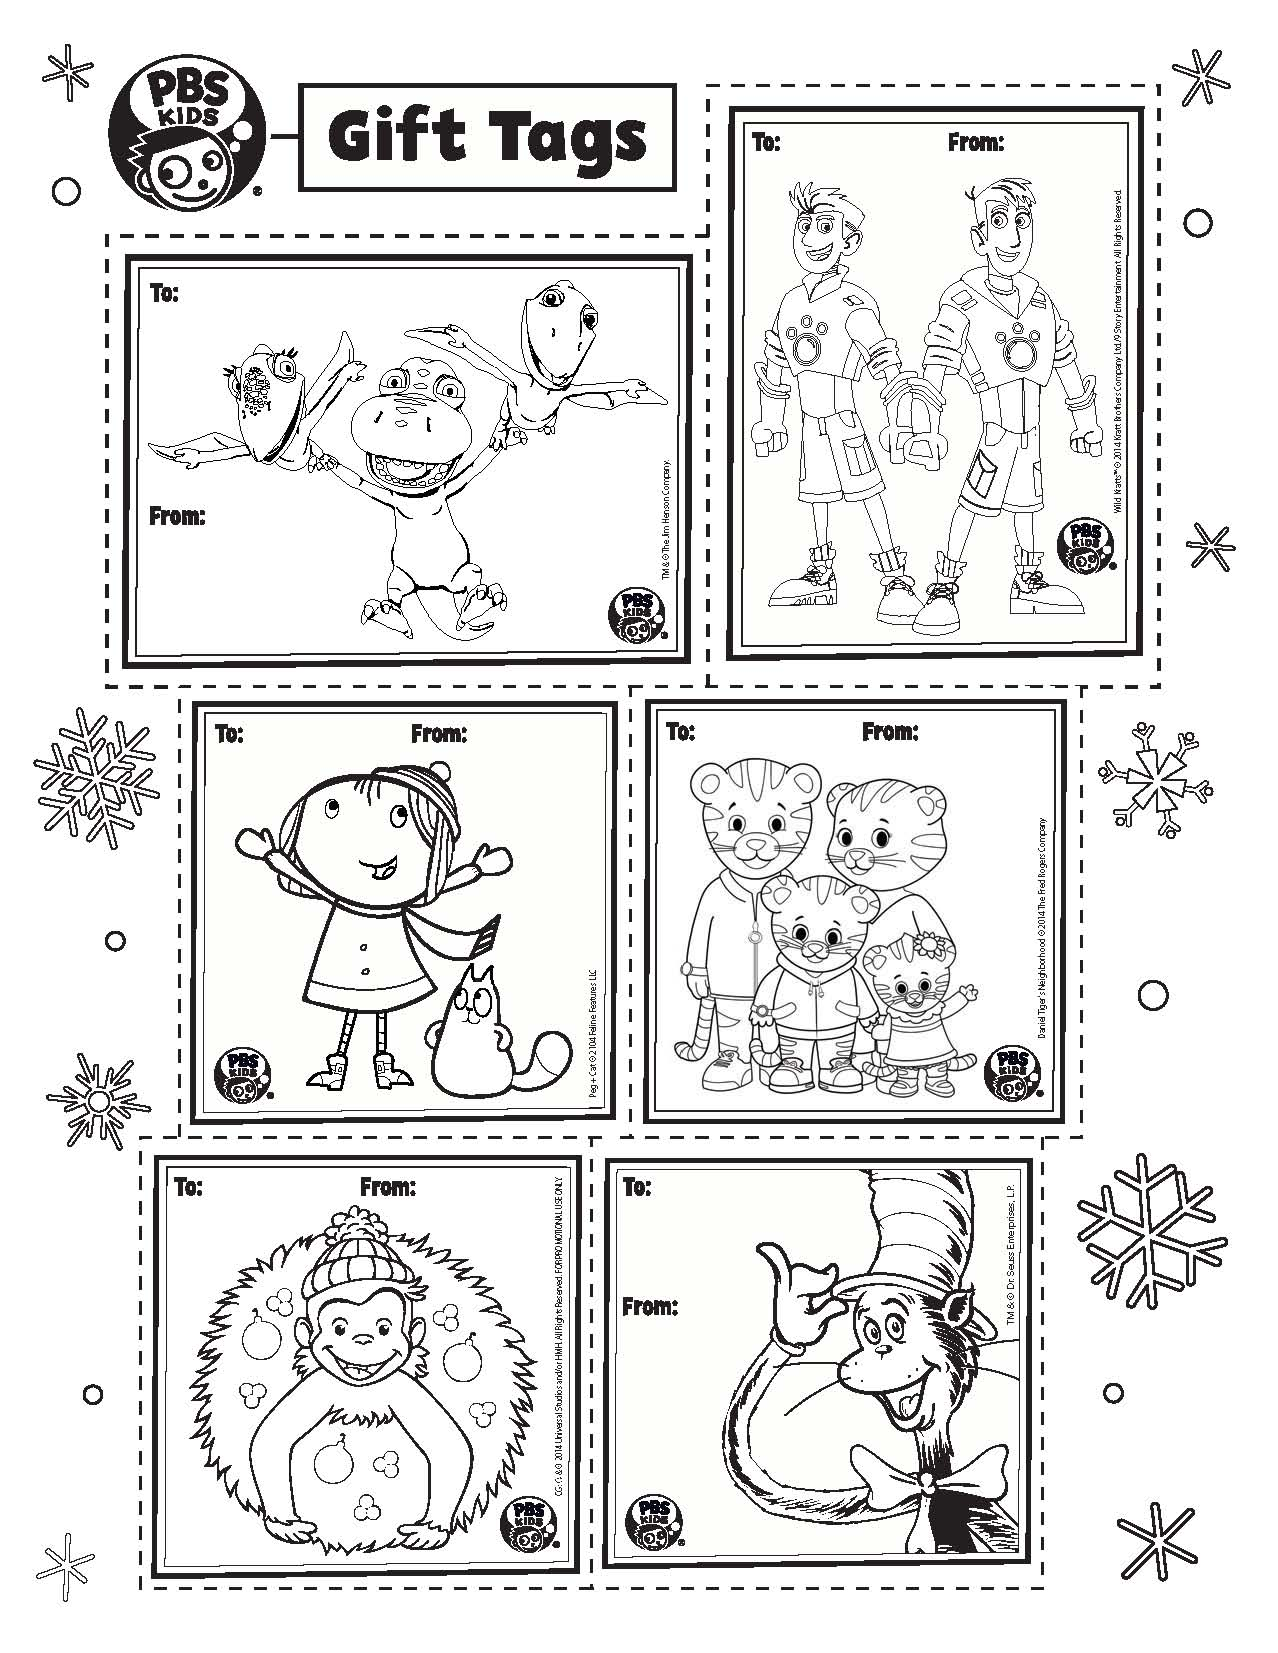 pbs kids gift tags 2_Page_2